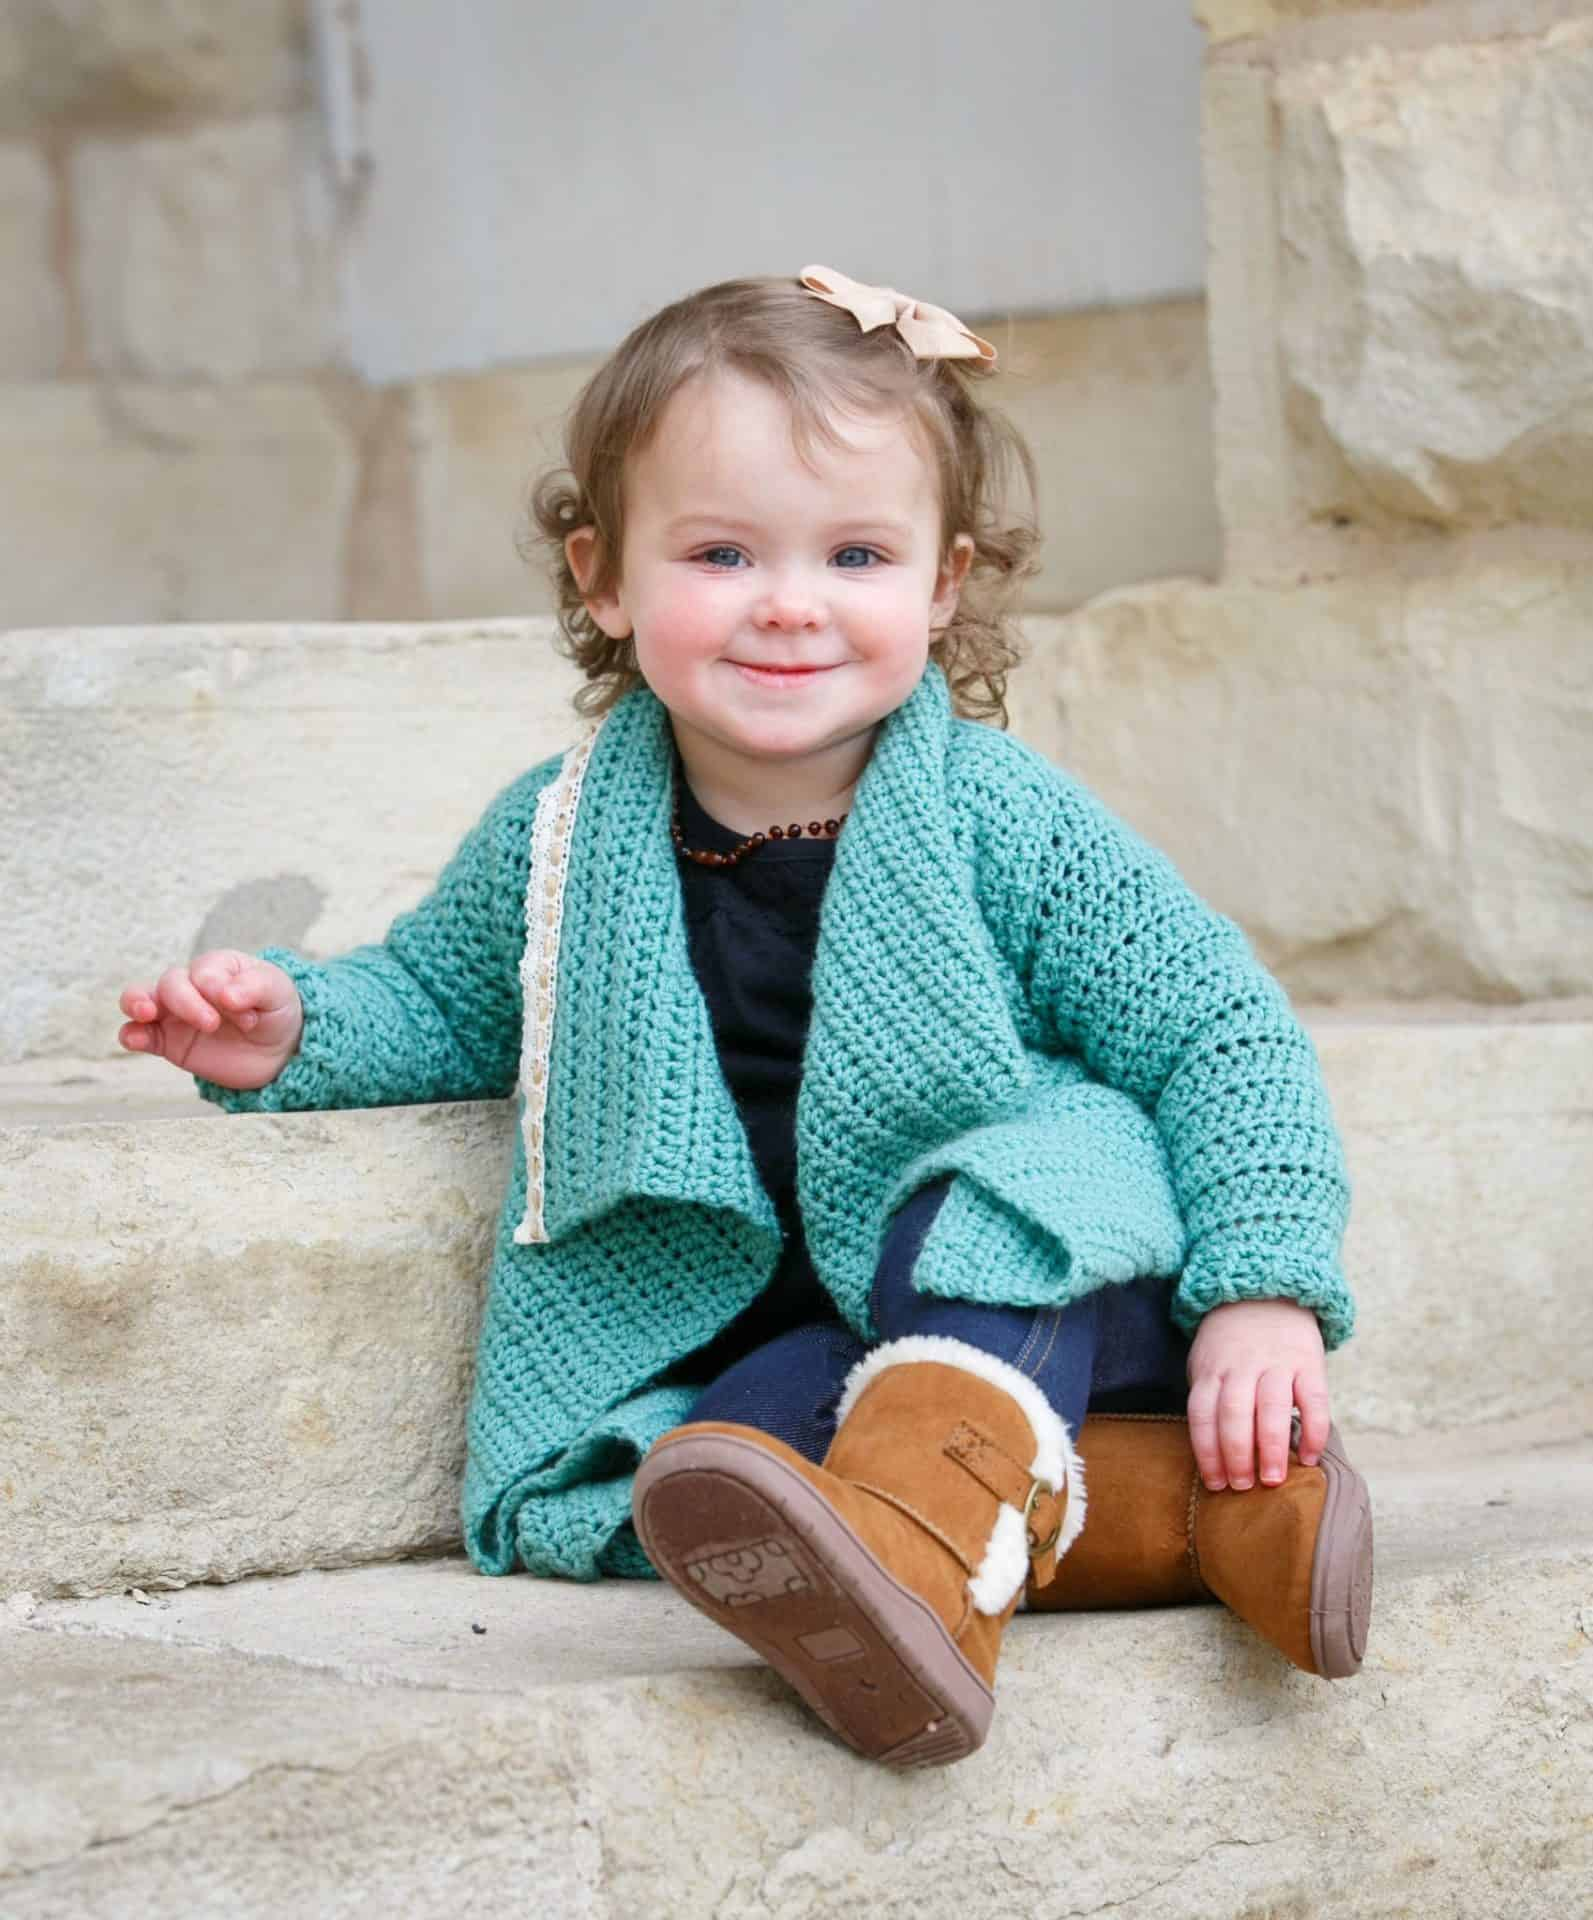 Child Size Blanket Cardigan Free Crochet Pattern Size